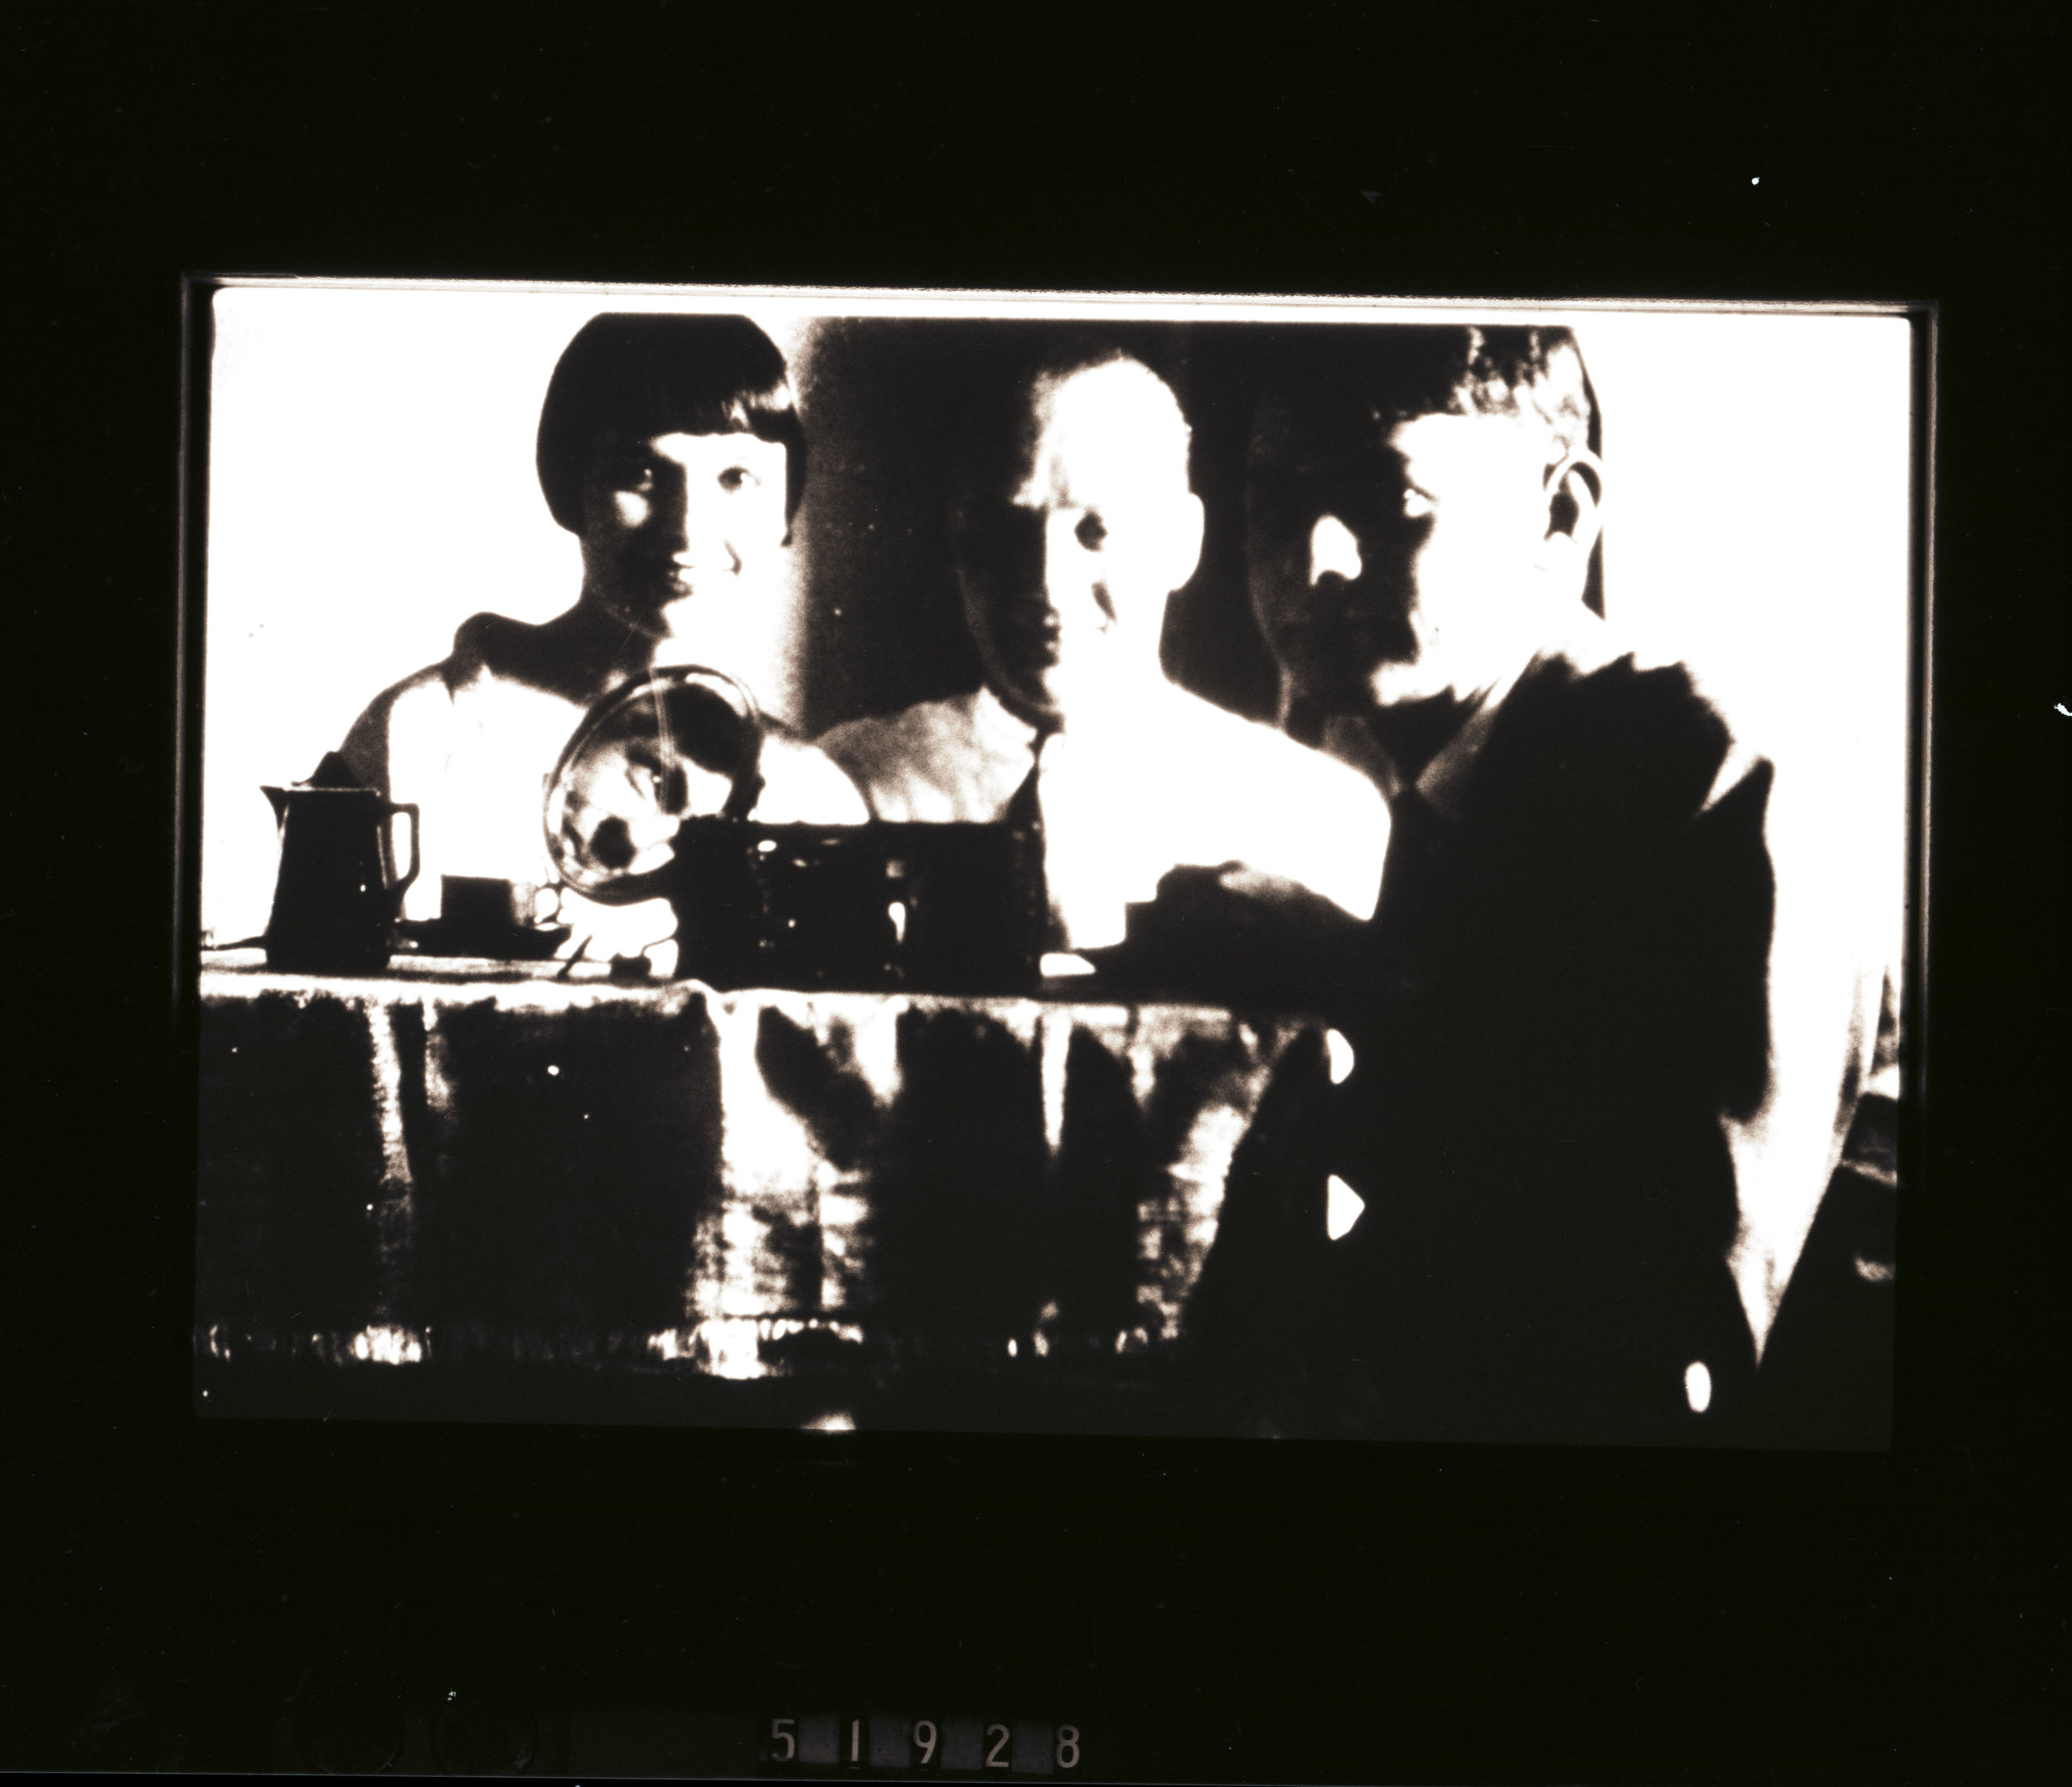 From left to right, Louise Brooks, Eskie, and Lothar Wolff in 1929